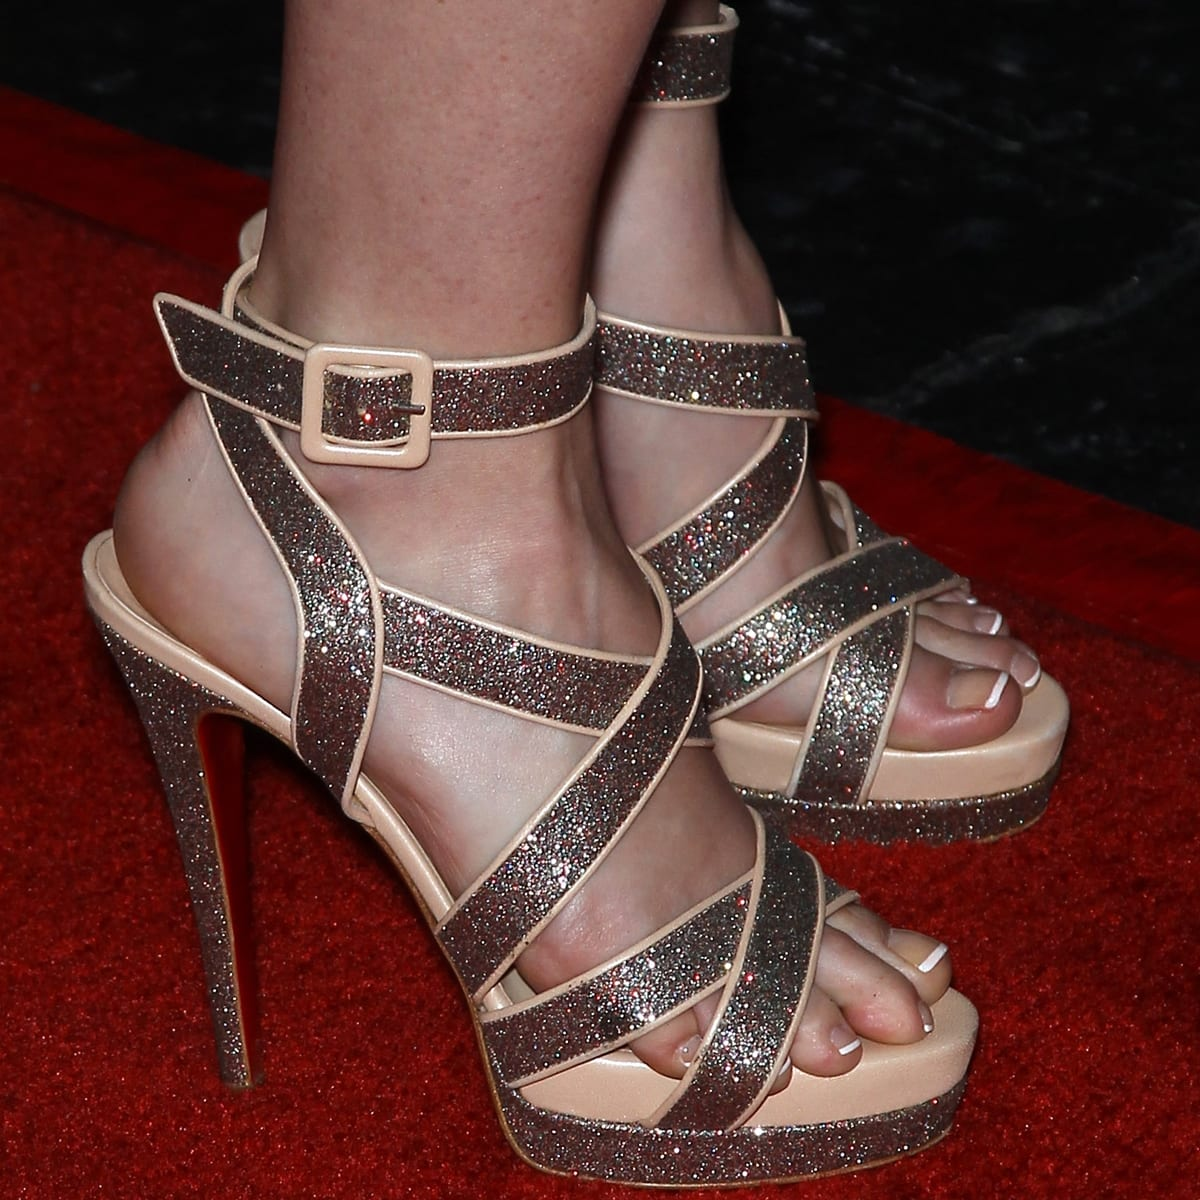 Heidi Montag shows off her size 7 (US) feet in glittering Christian Louboutin Straratata sandals